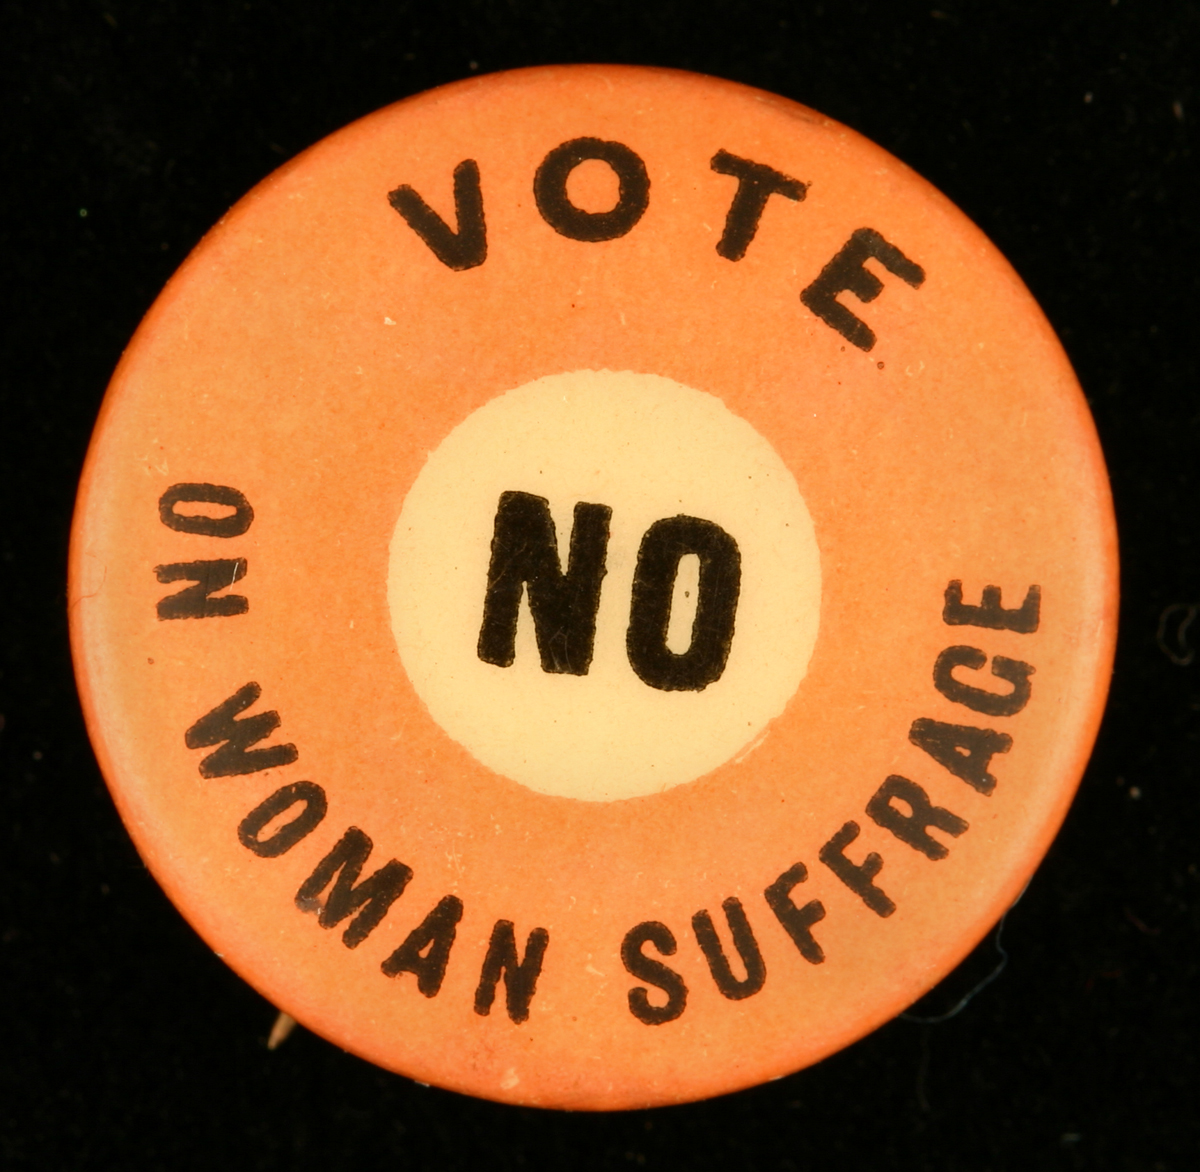 "Round orange button with yellow circle in center, with printed text reading ""Vote no on woman suffrage"""